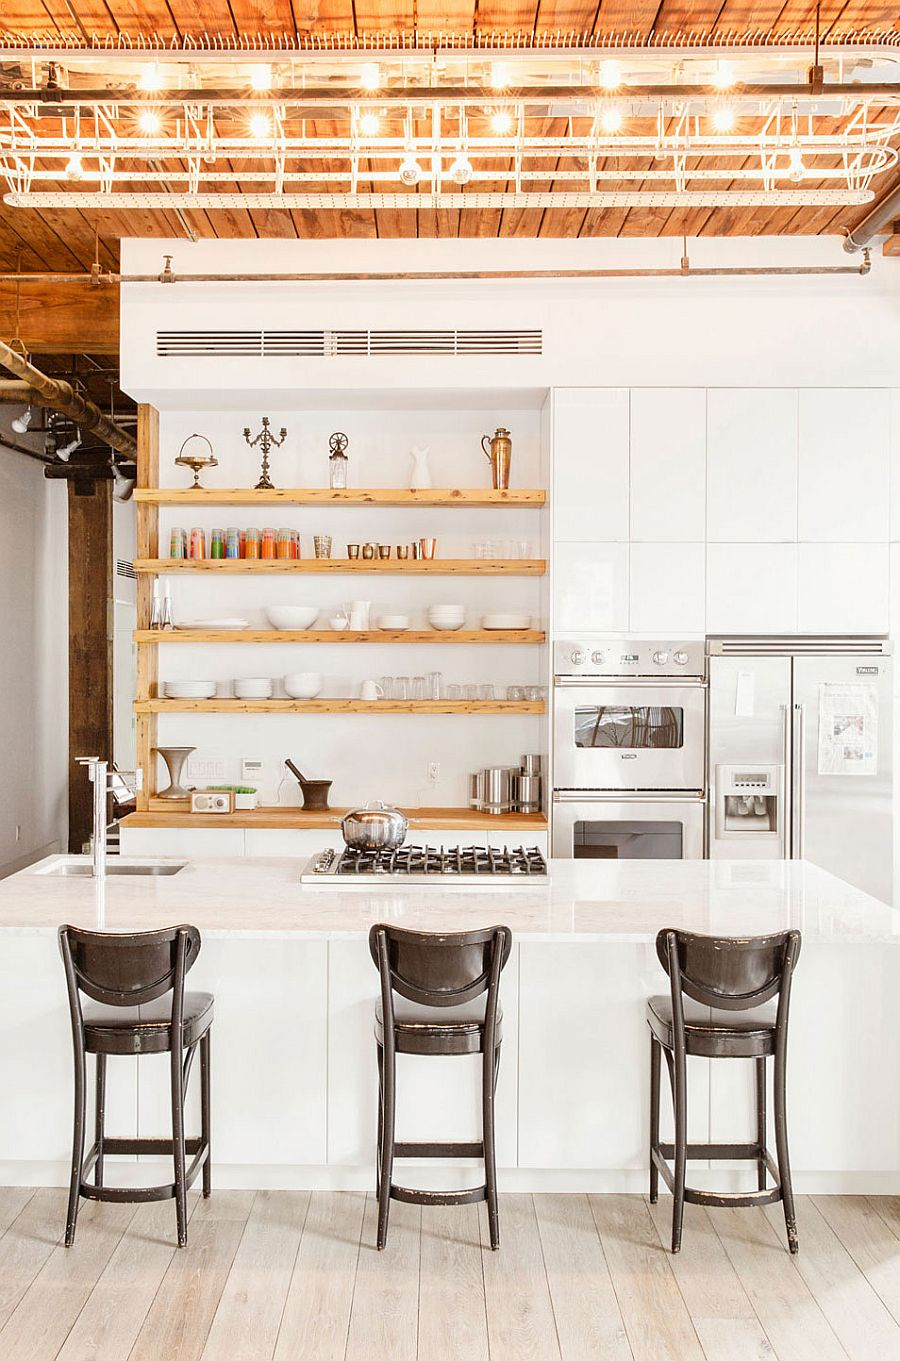 Williamsburg loft industrial nyc home designed for a chef for Industrial style kitchen